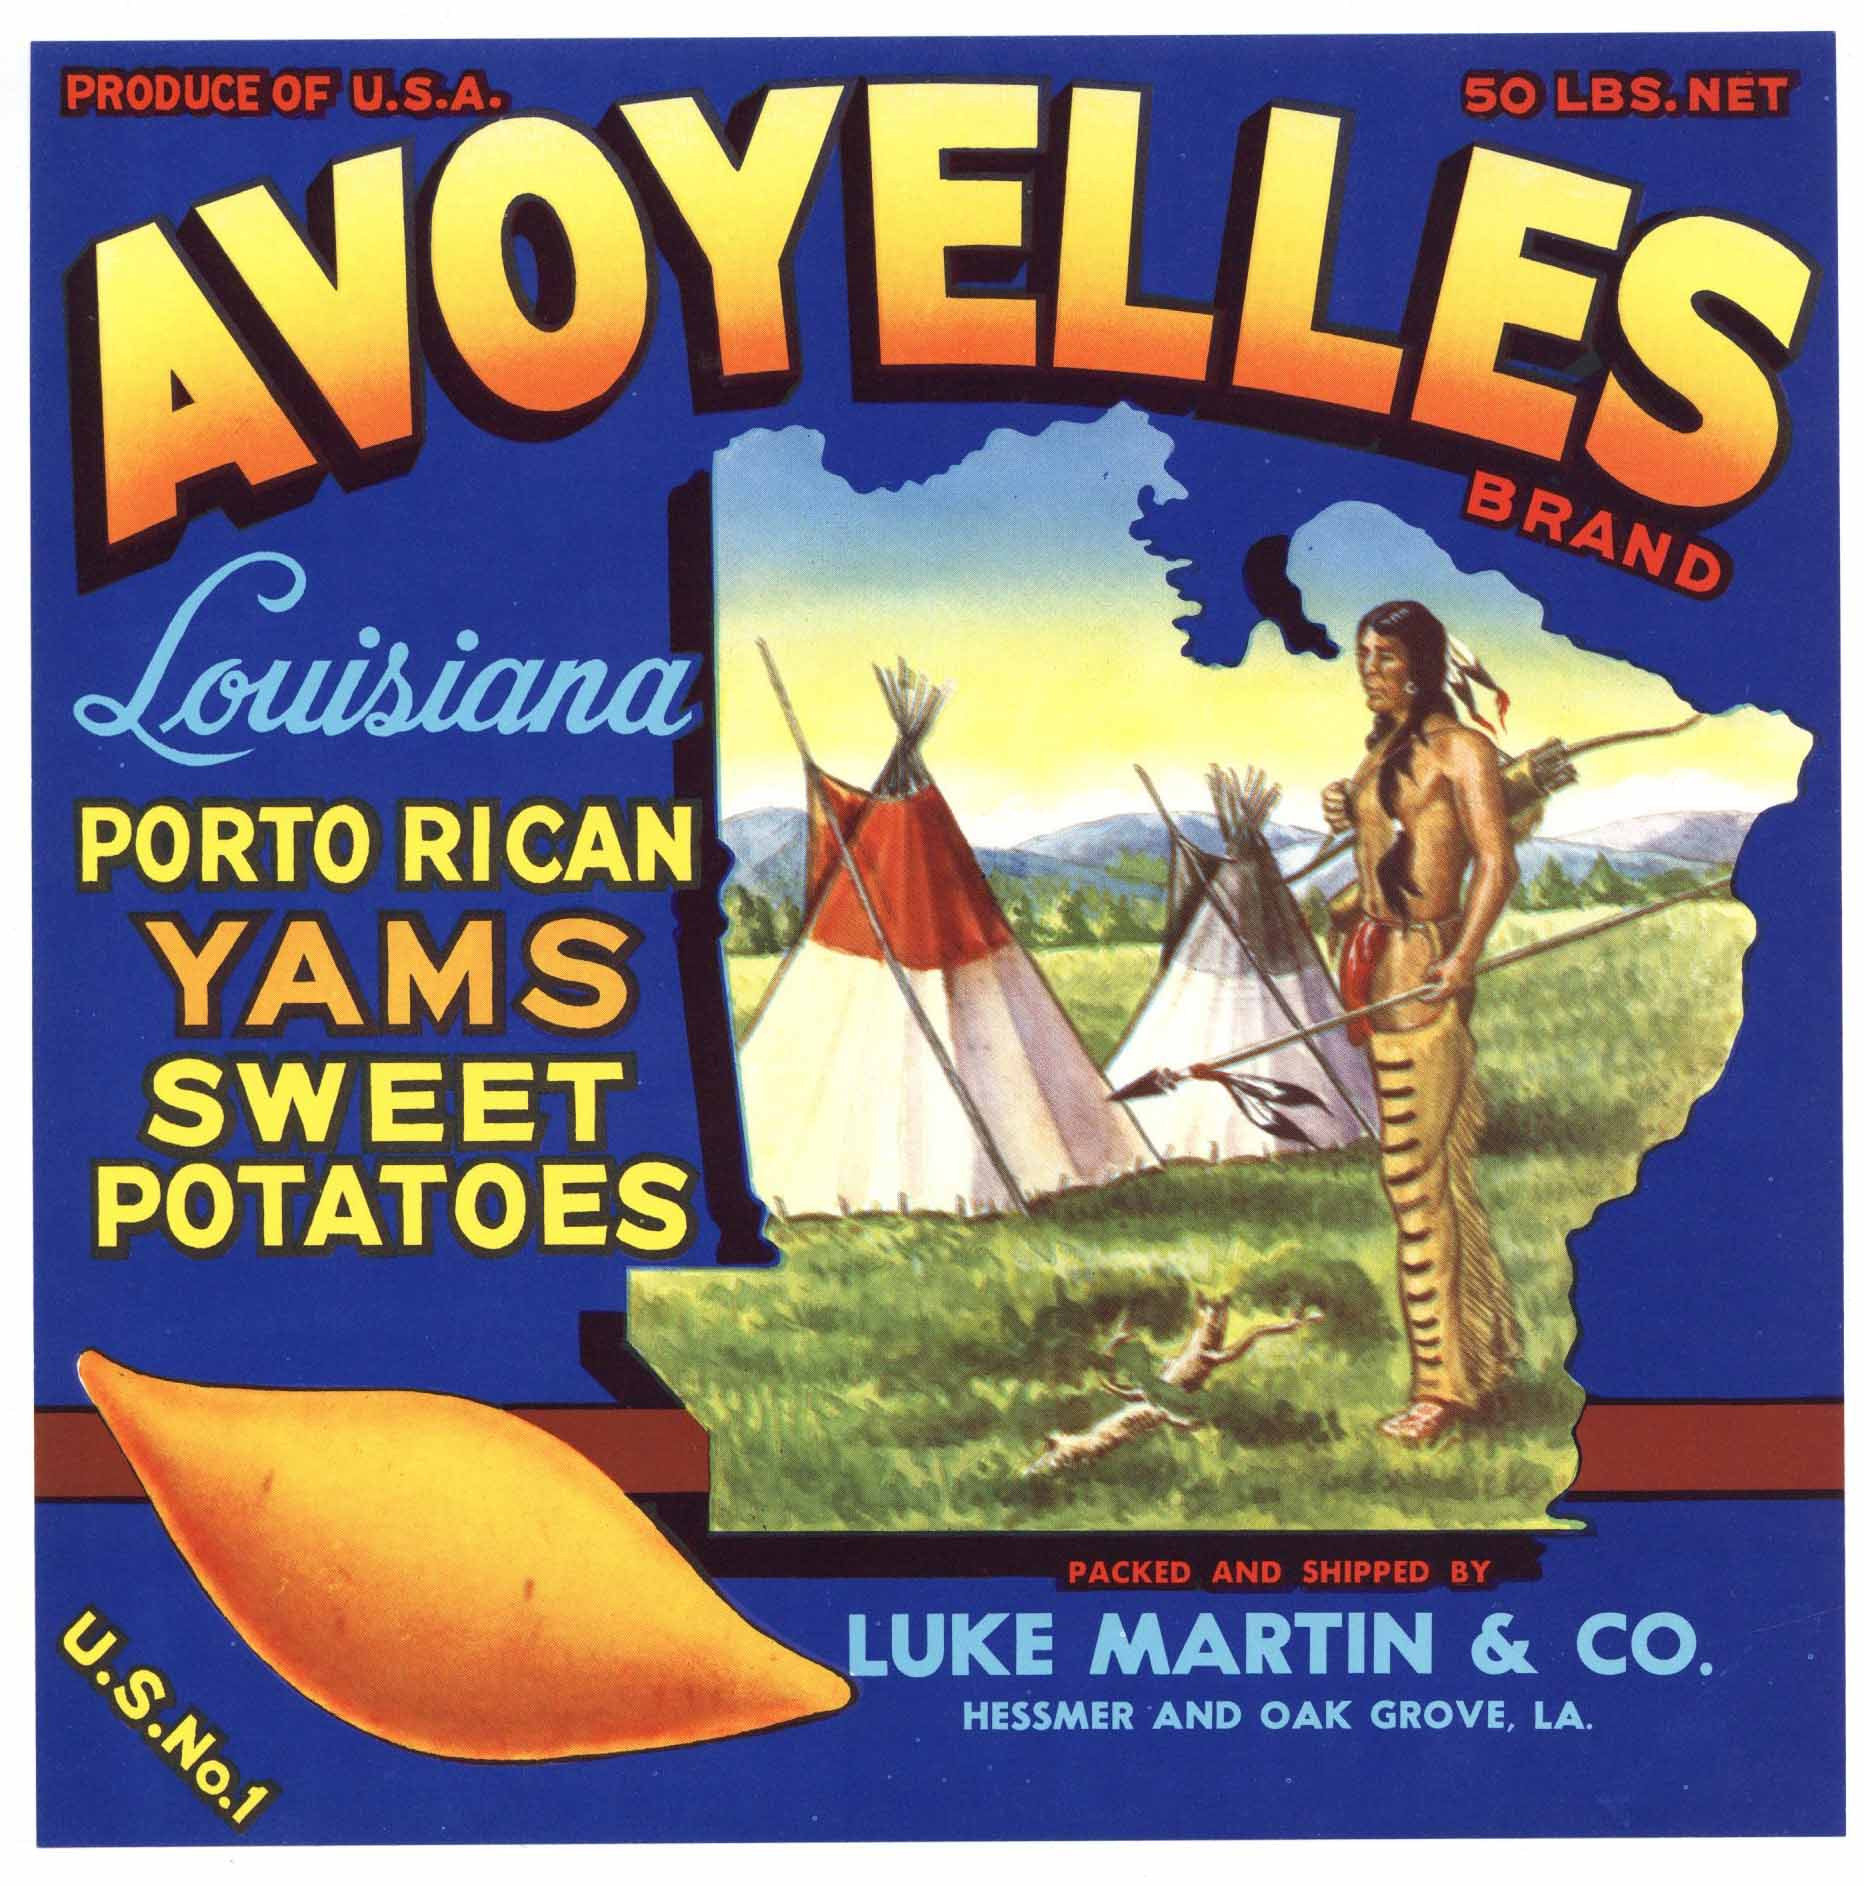 Avoyelles Brand Vintage Oak Grove Louisiana Yam Crate Label